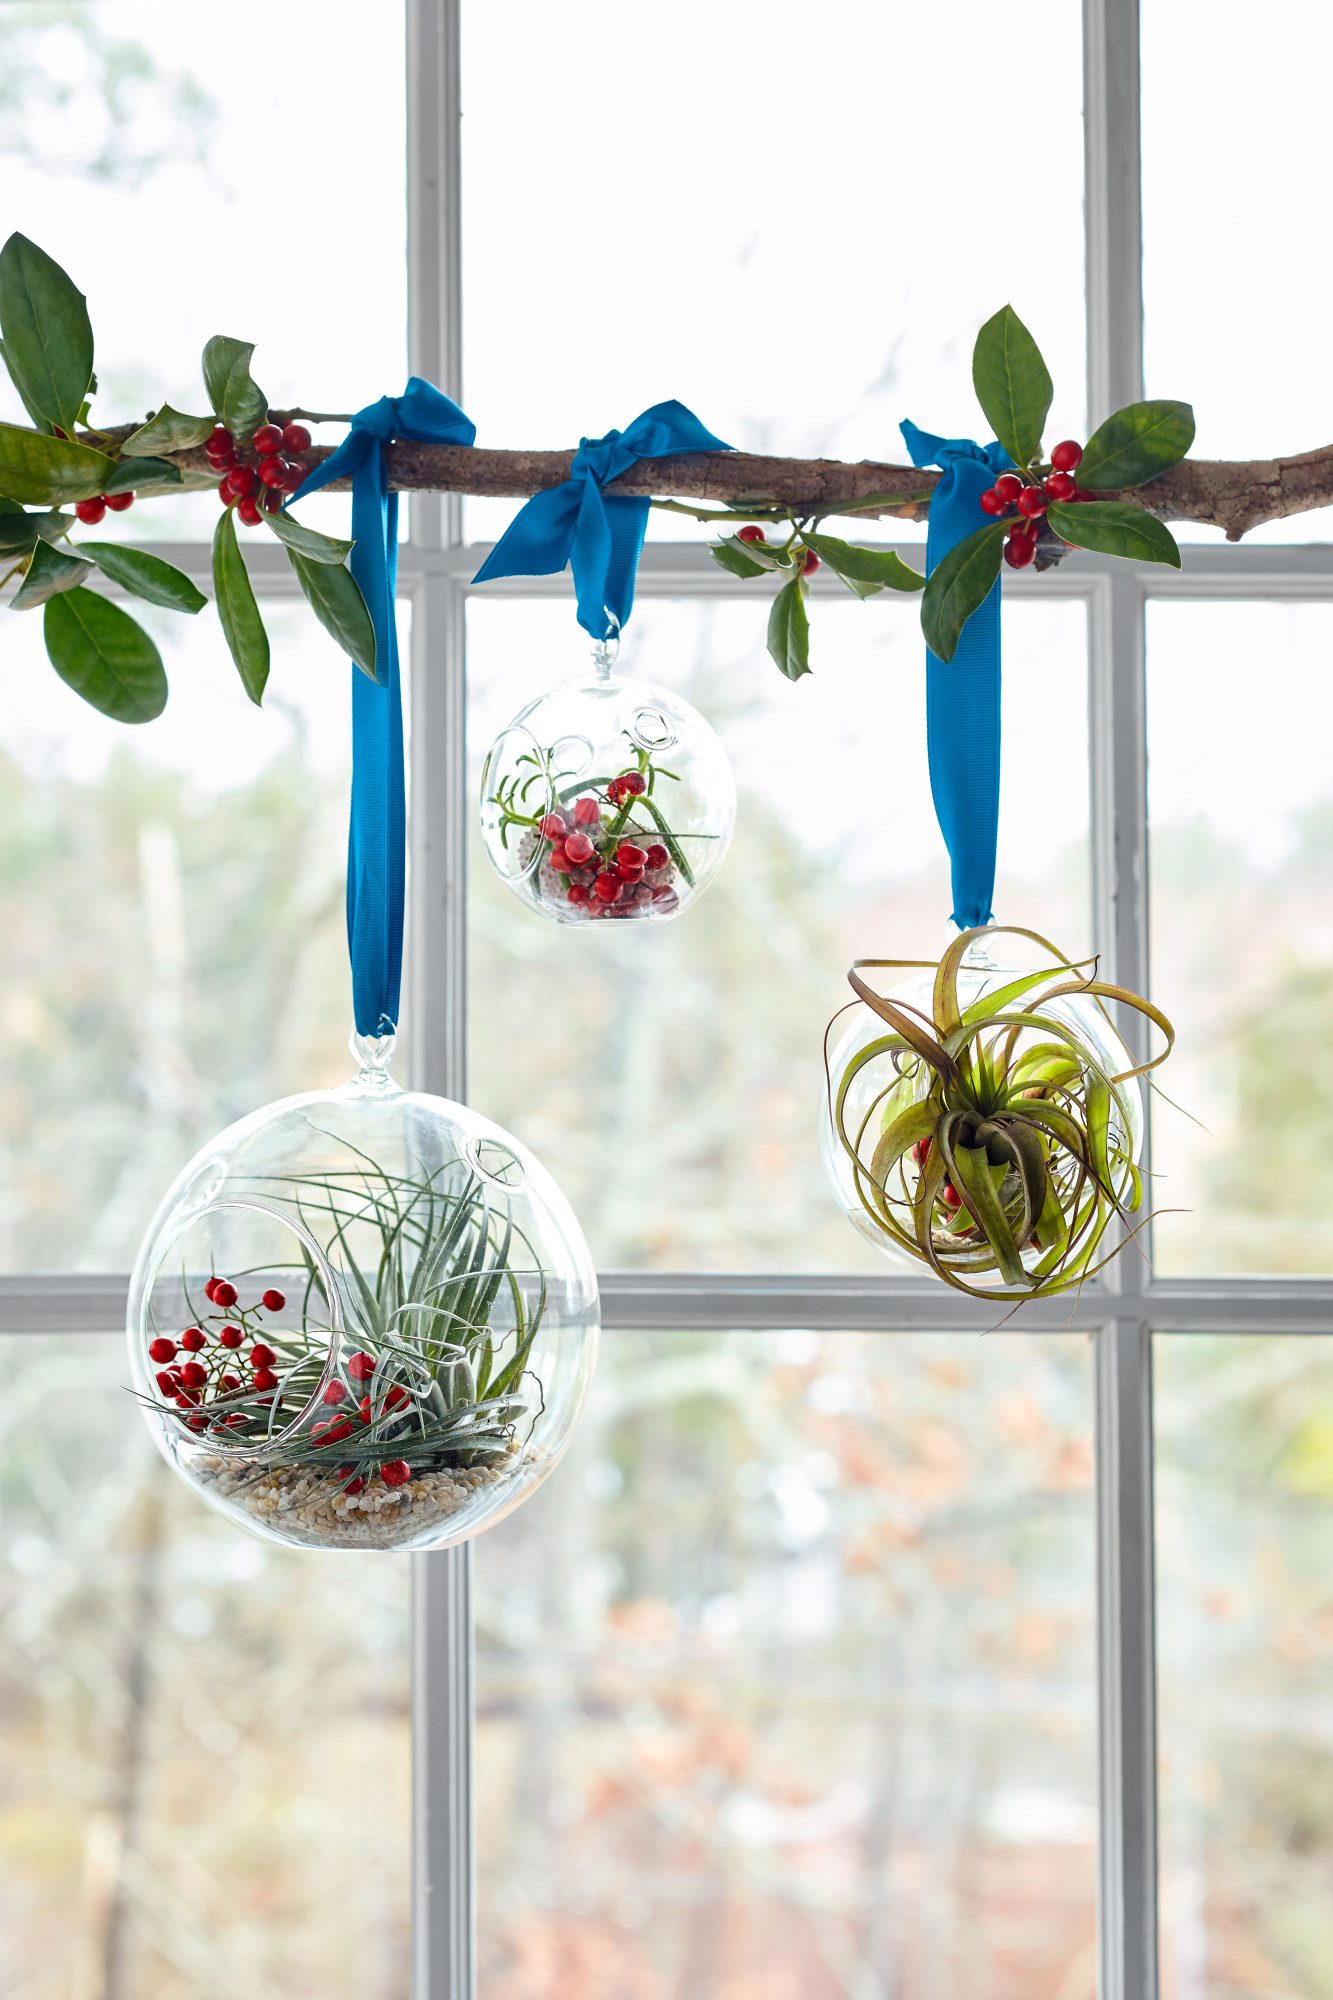 Hanging Globe Air Plants Garden Gifts